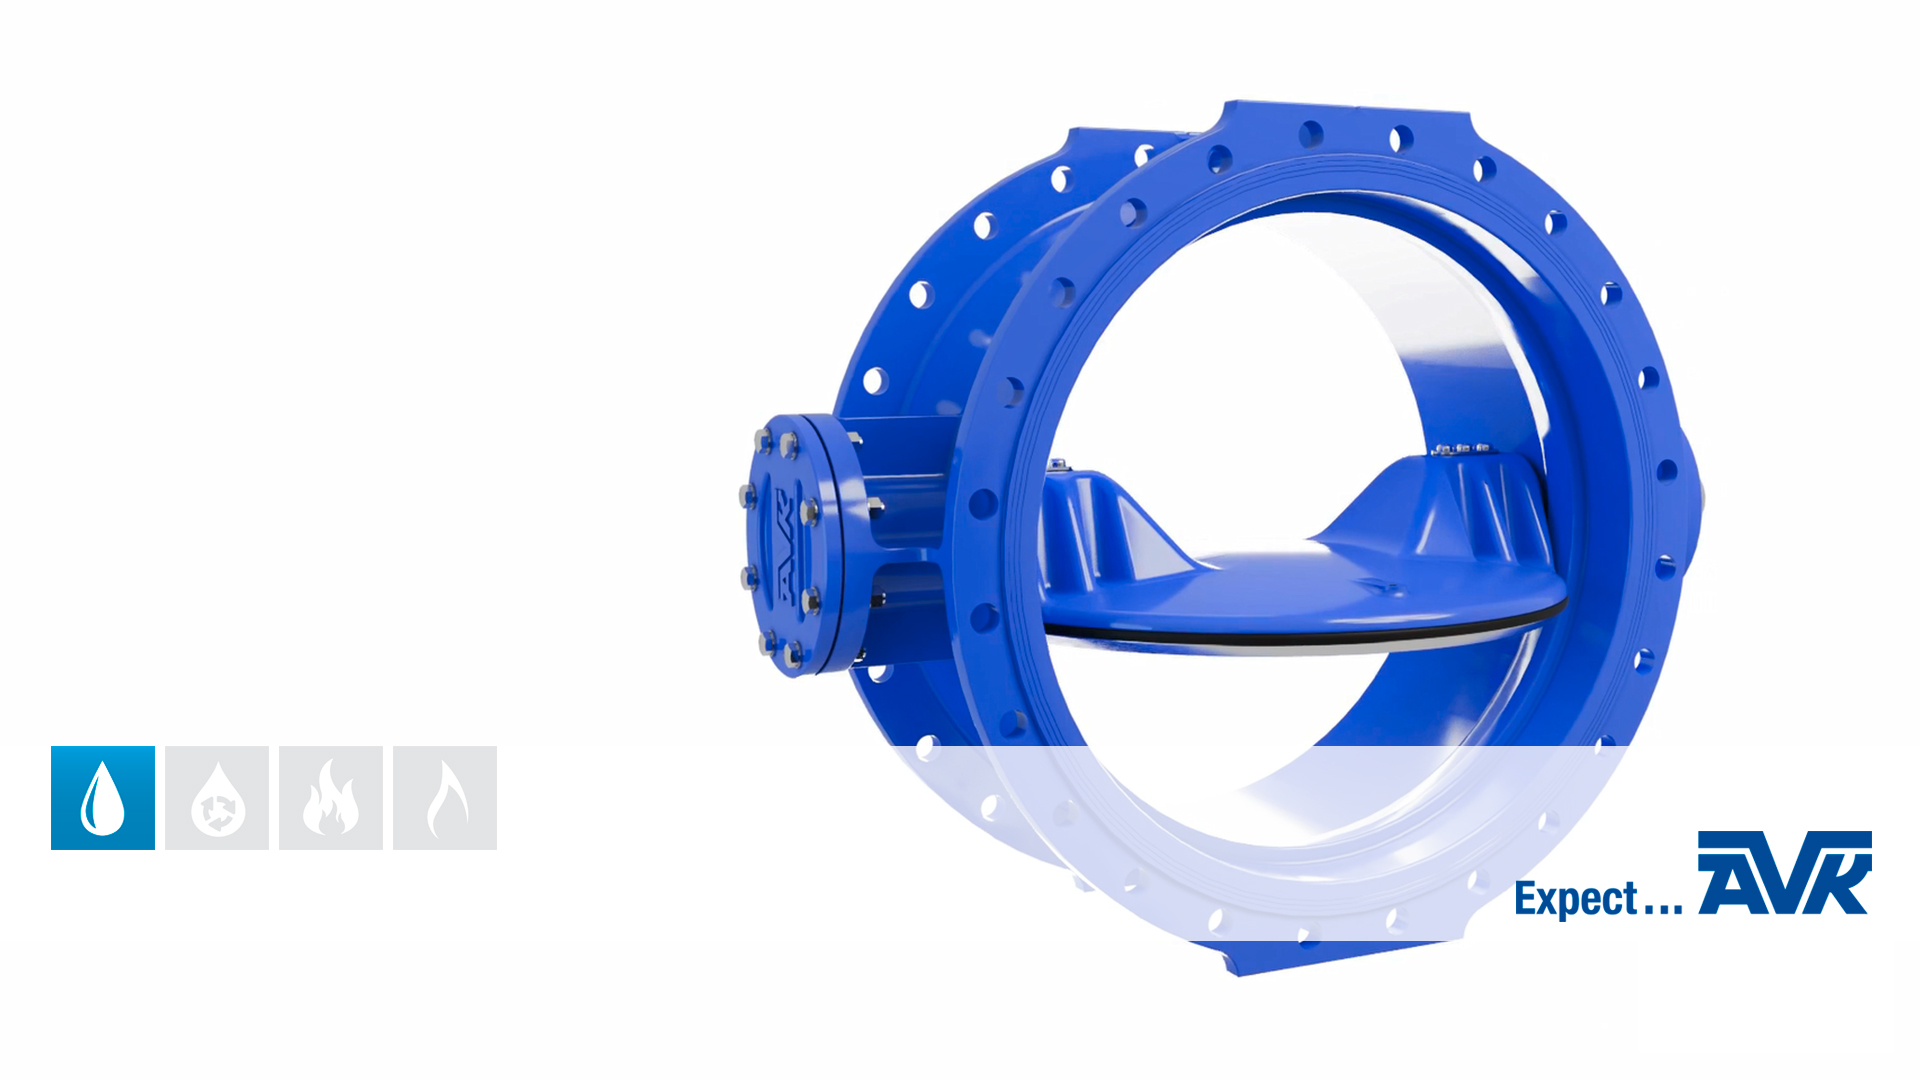 Variants and features of our double eccentric butterfly valves series 756